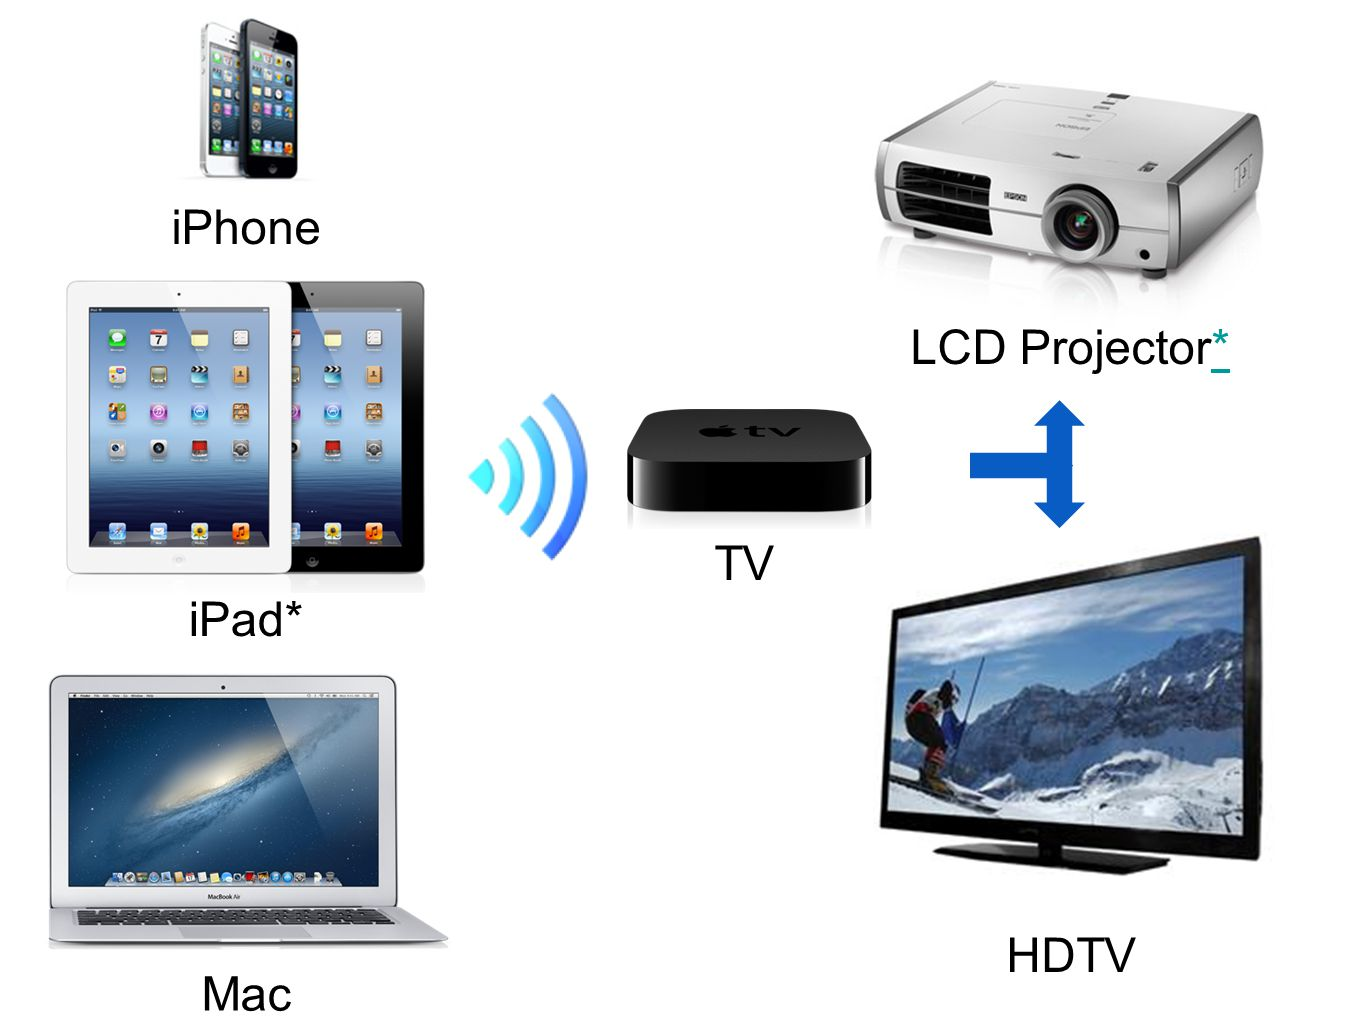 LCD Projector** HDTV iPhone iPad* Mac TV